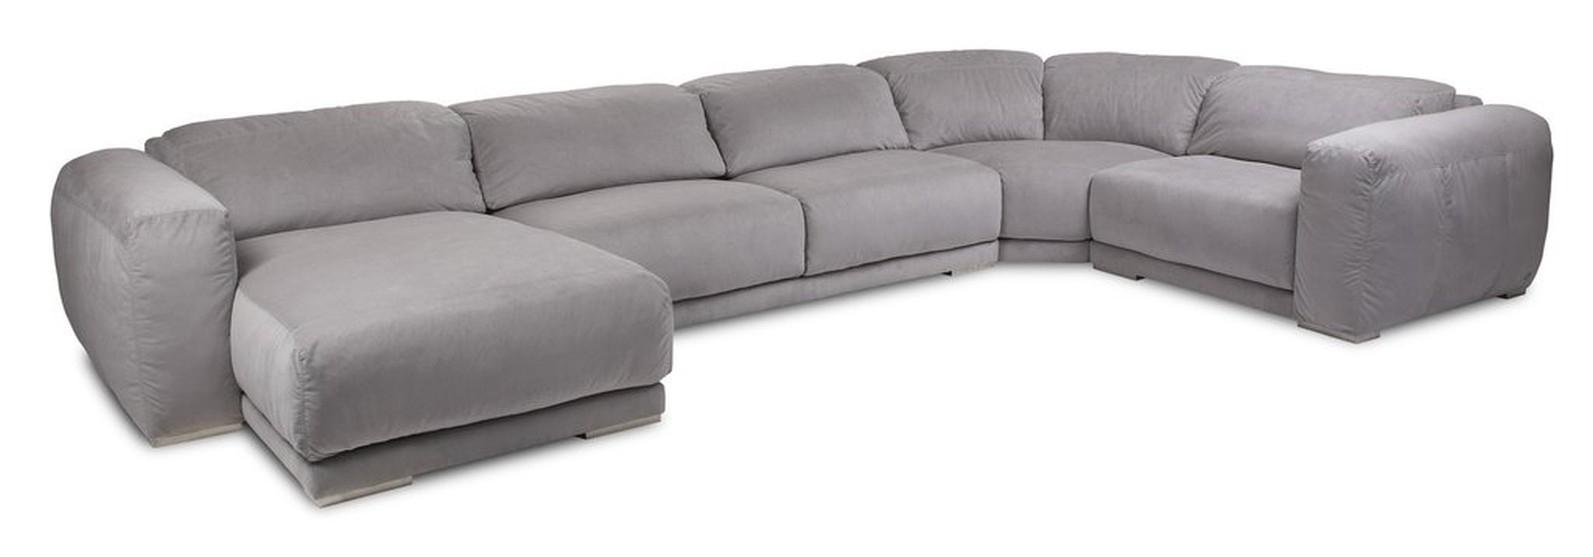 Sectional Sofa: Sectional Sofa Ottawa Dramatic Charming Cheap Inside Kijiji Ottawa Sectional Sofas (View 2 of 10)